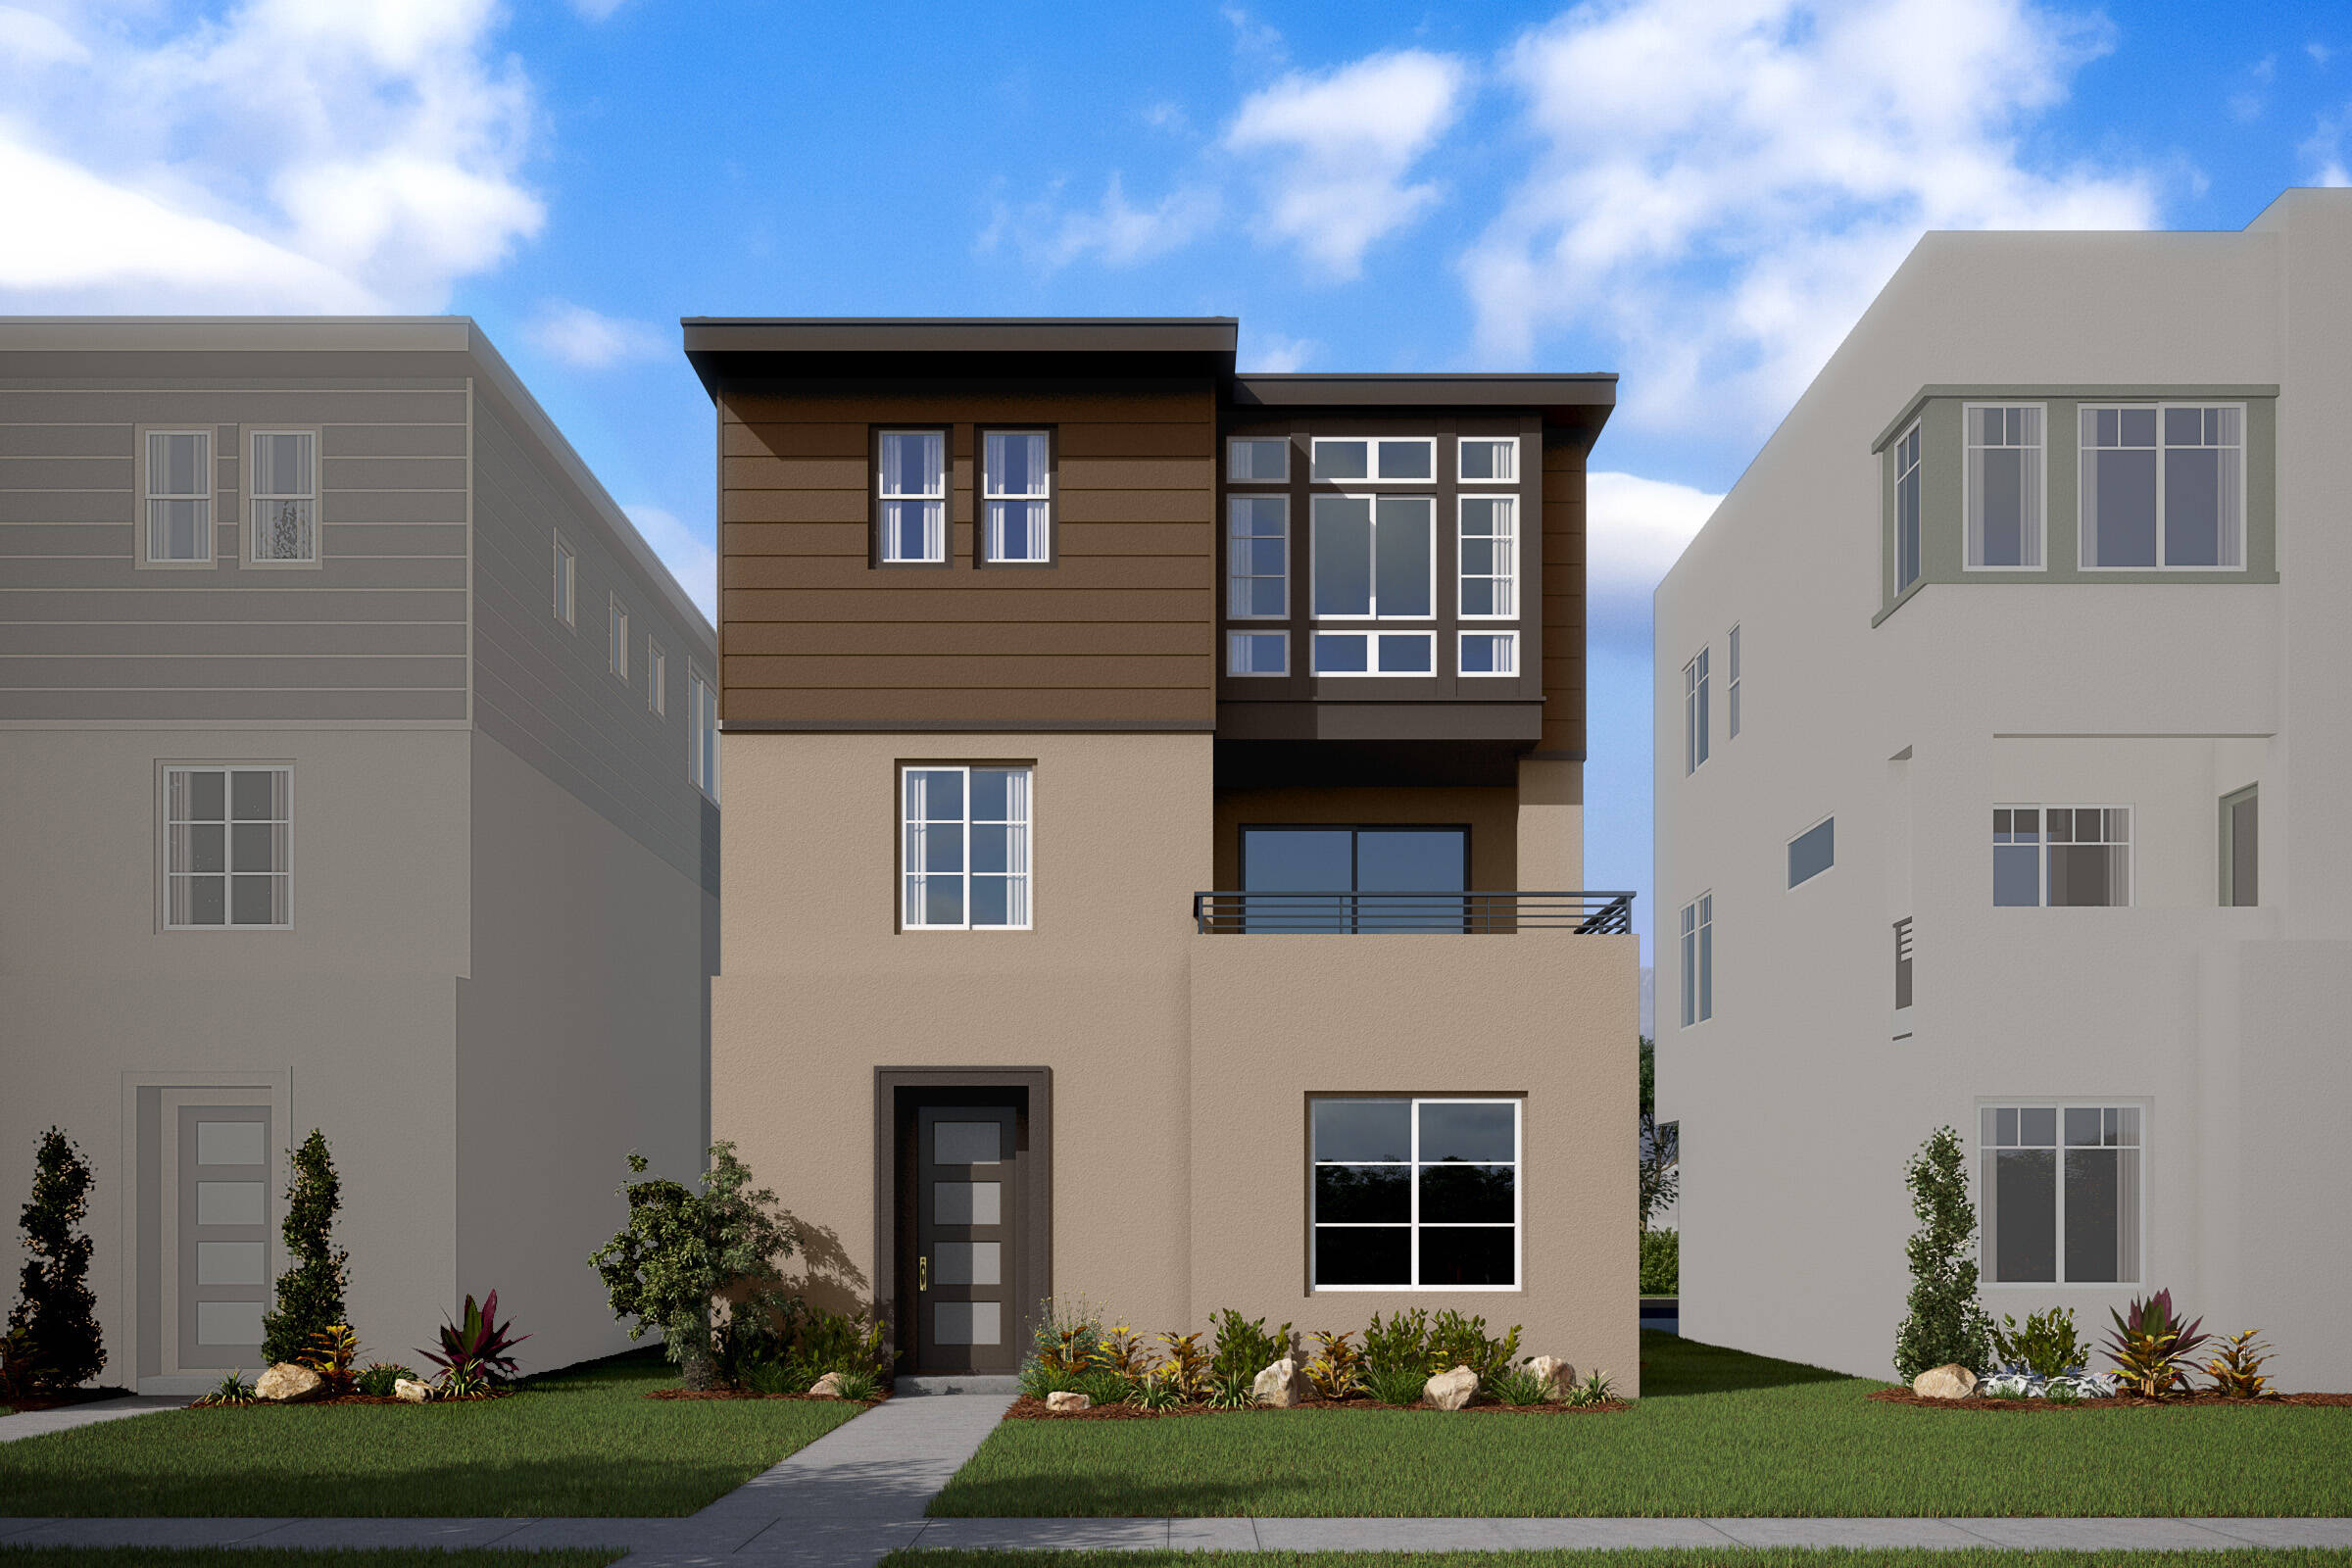 metropolis abstract traditional c new homes deco at cadence park